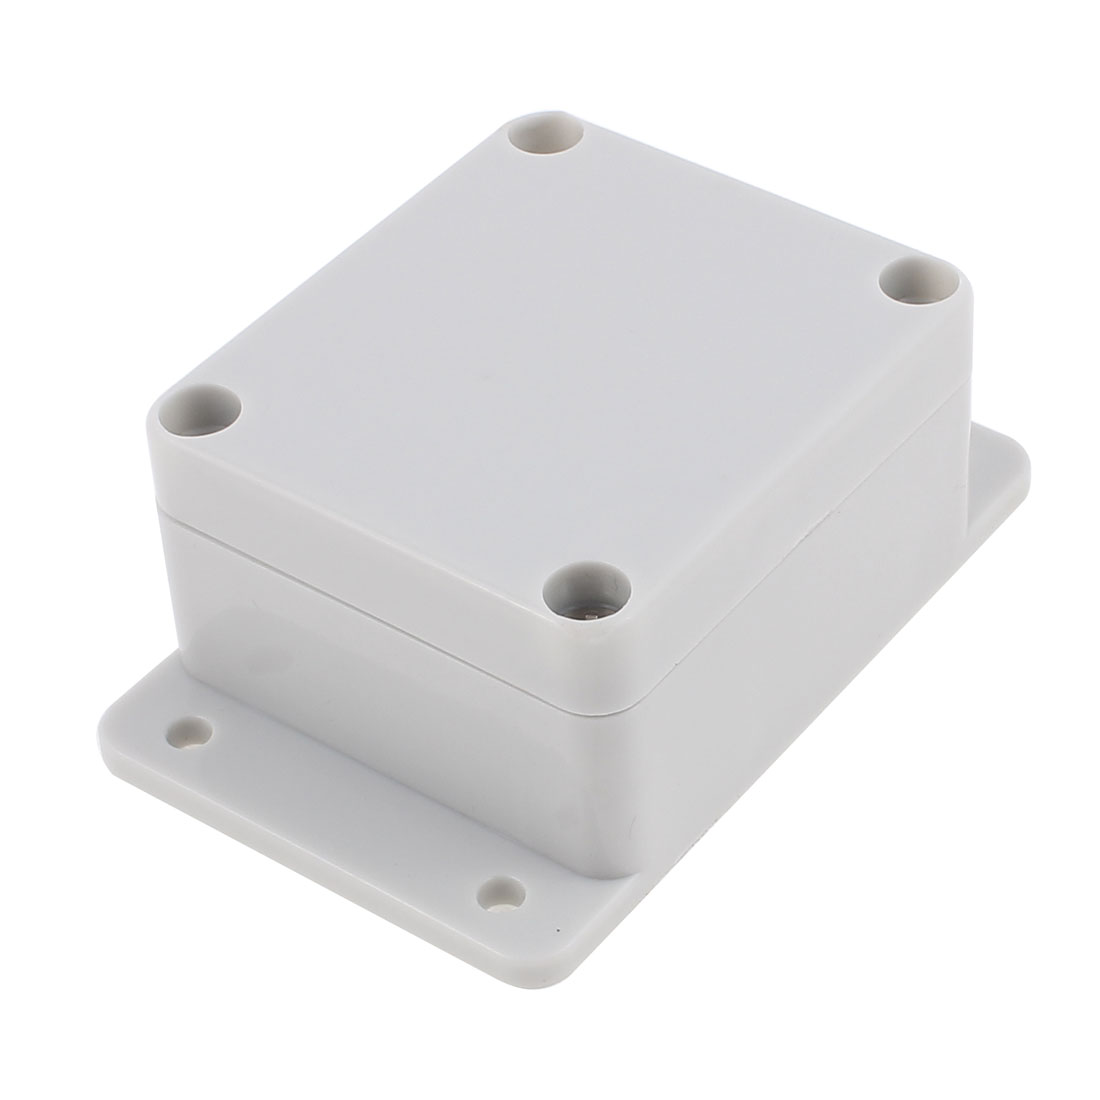 89 x 53 x 35mm Dustproof IP65 Junction Box DIY Terminal Connecting Box Enclosure